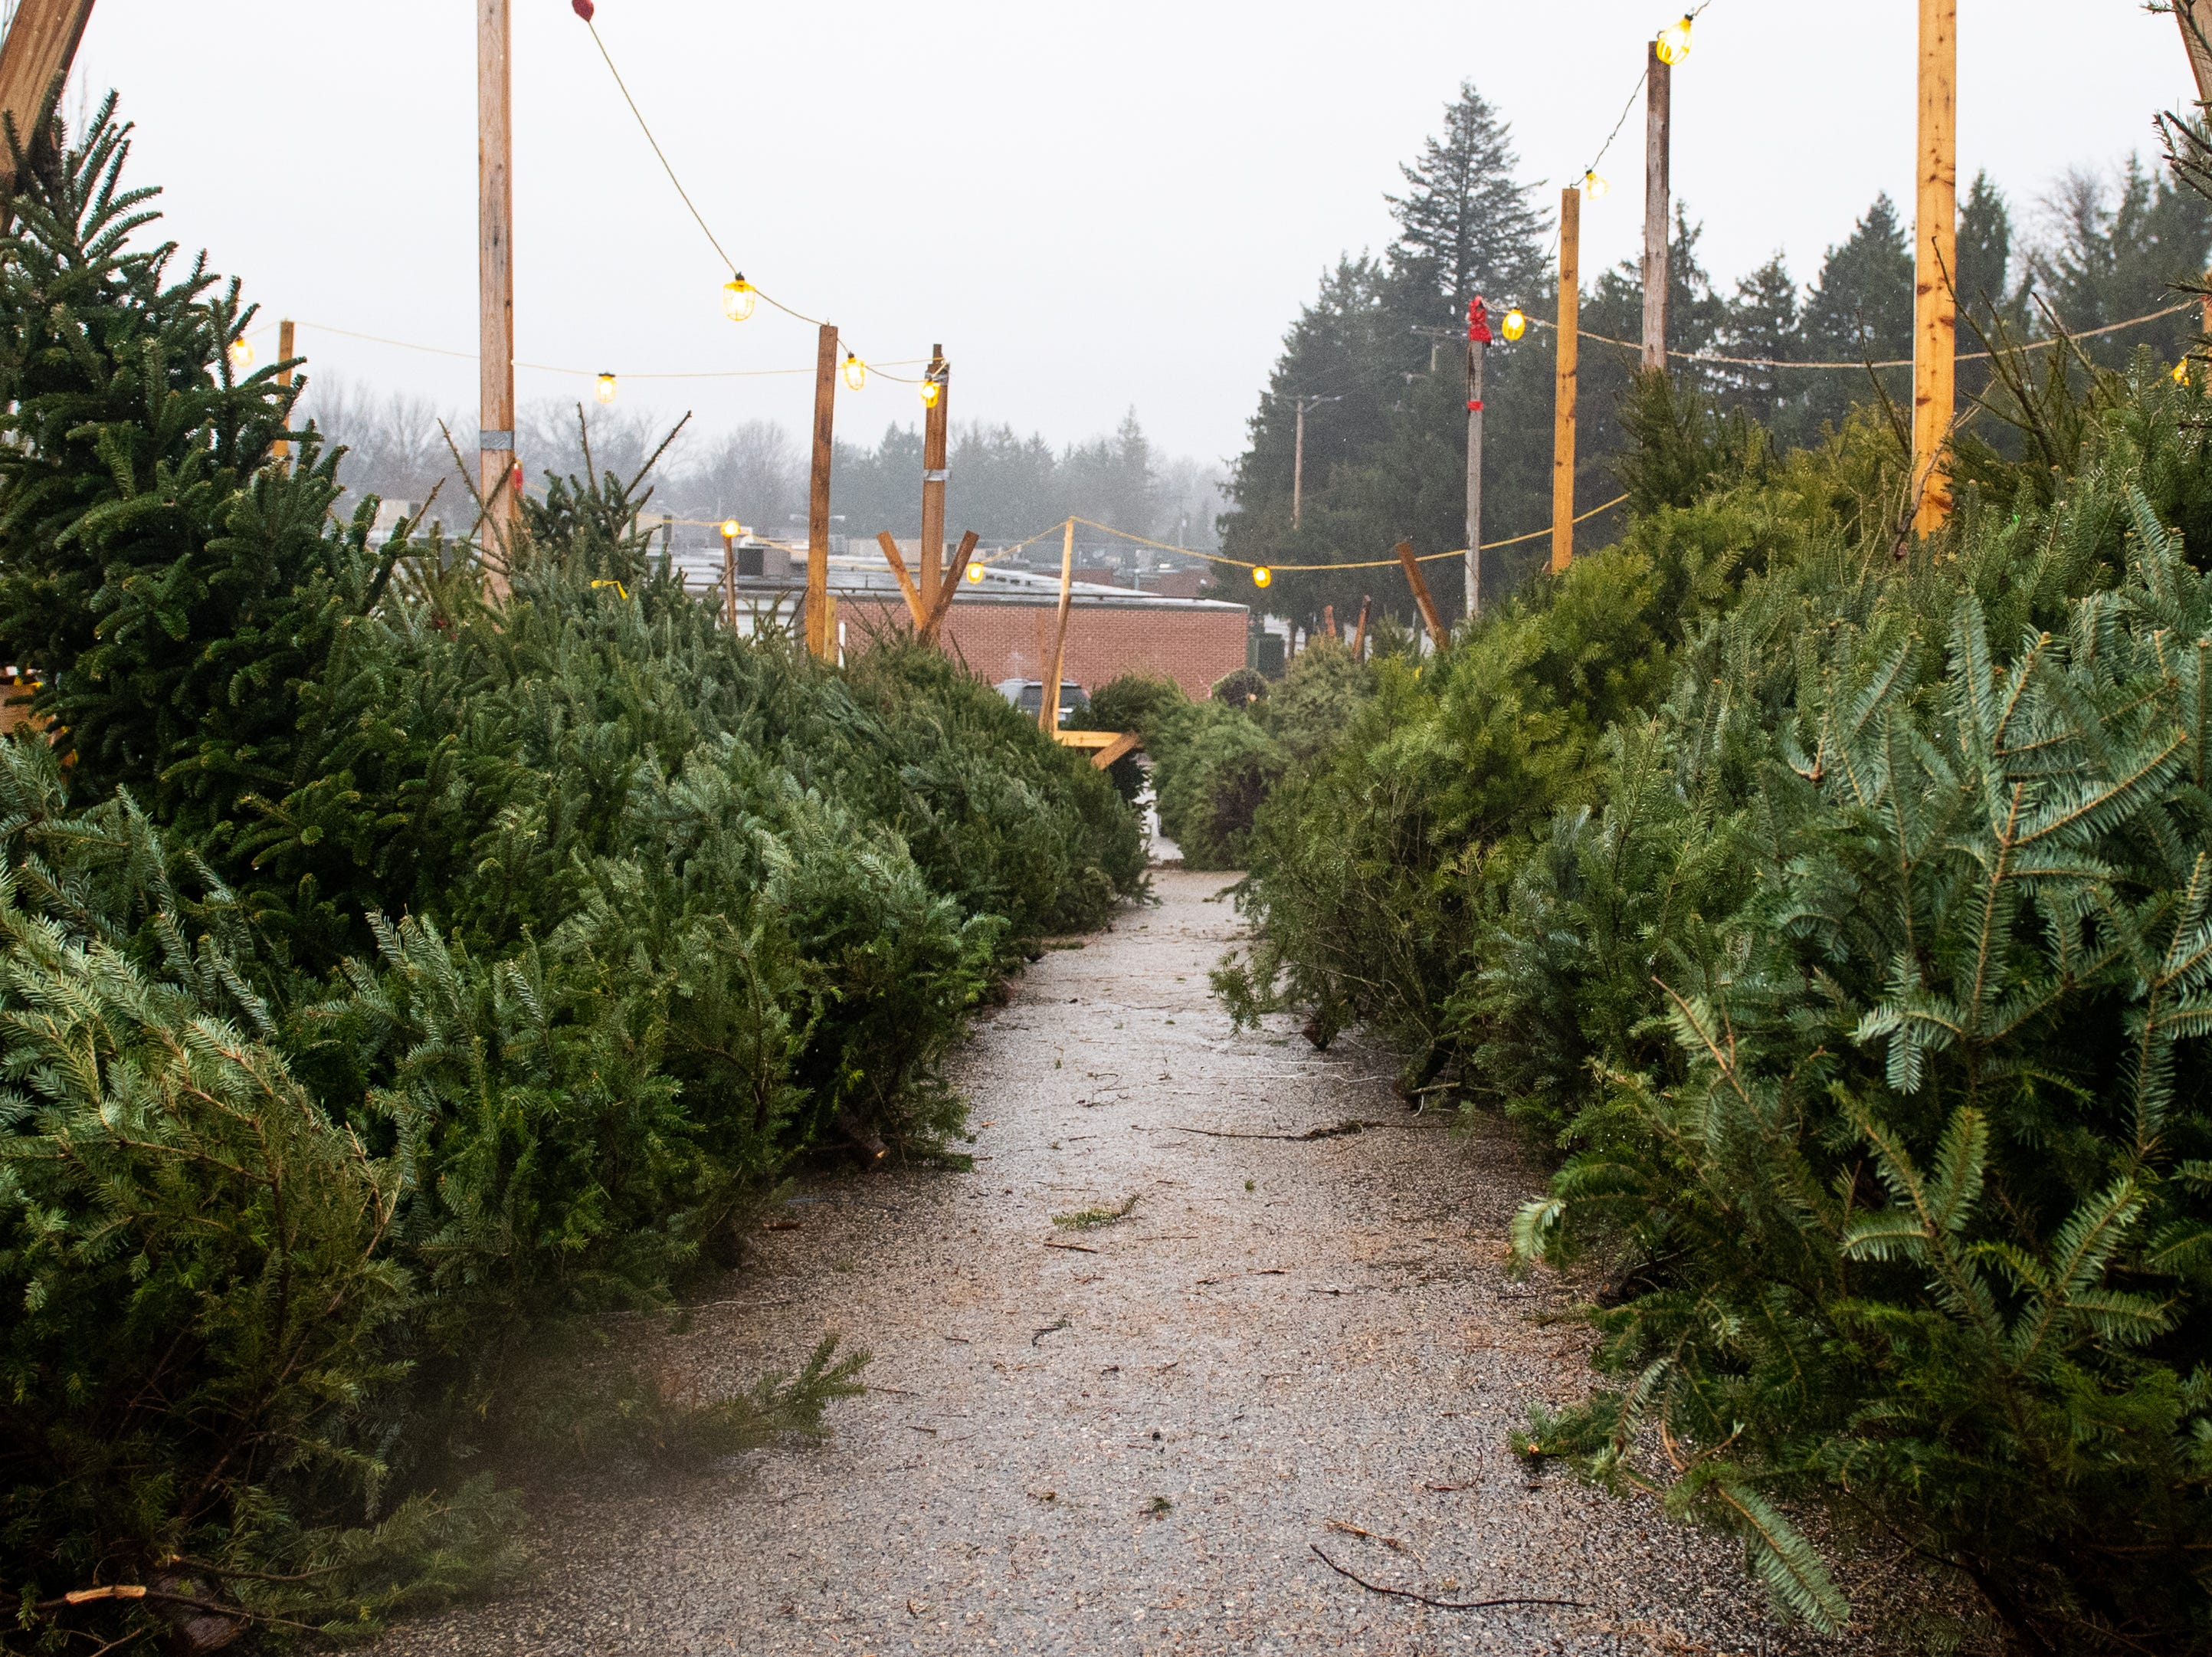 Hundreds of fresh locally grown trees are on sale in the lot, ranging from 4 to 14 feet, Saturday, December 15, 2018.